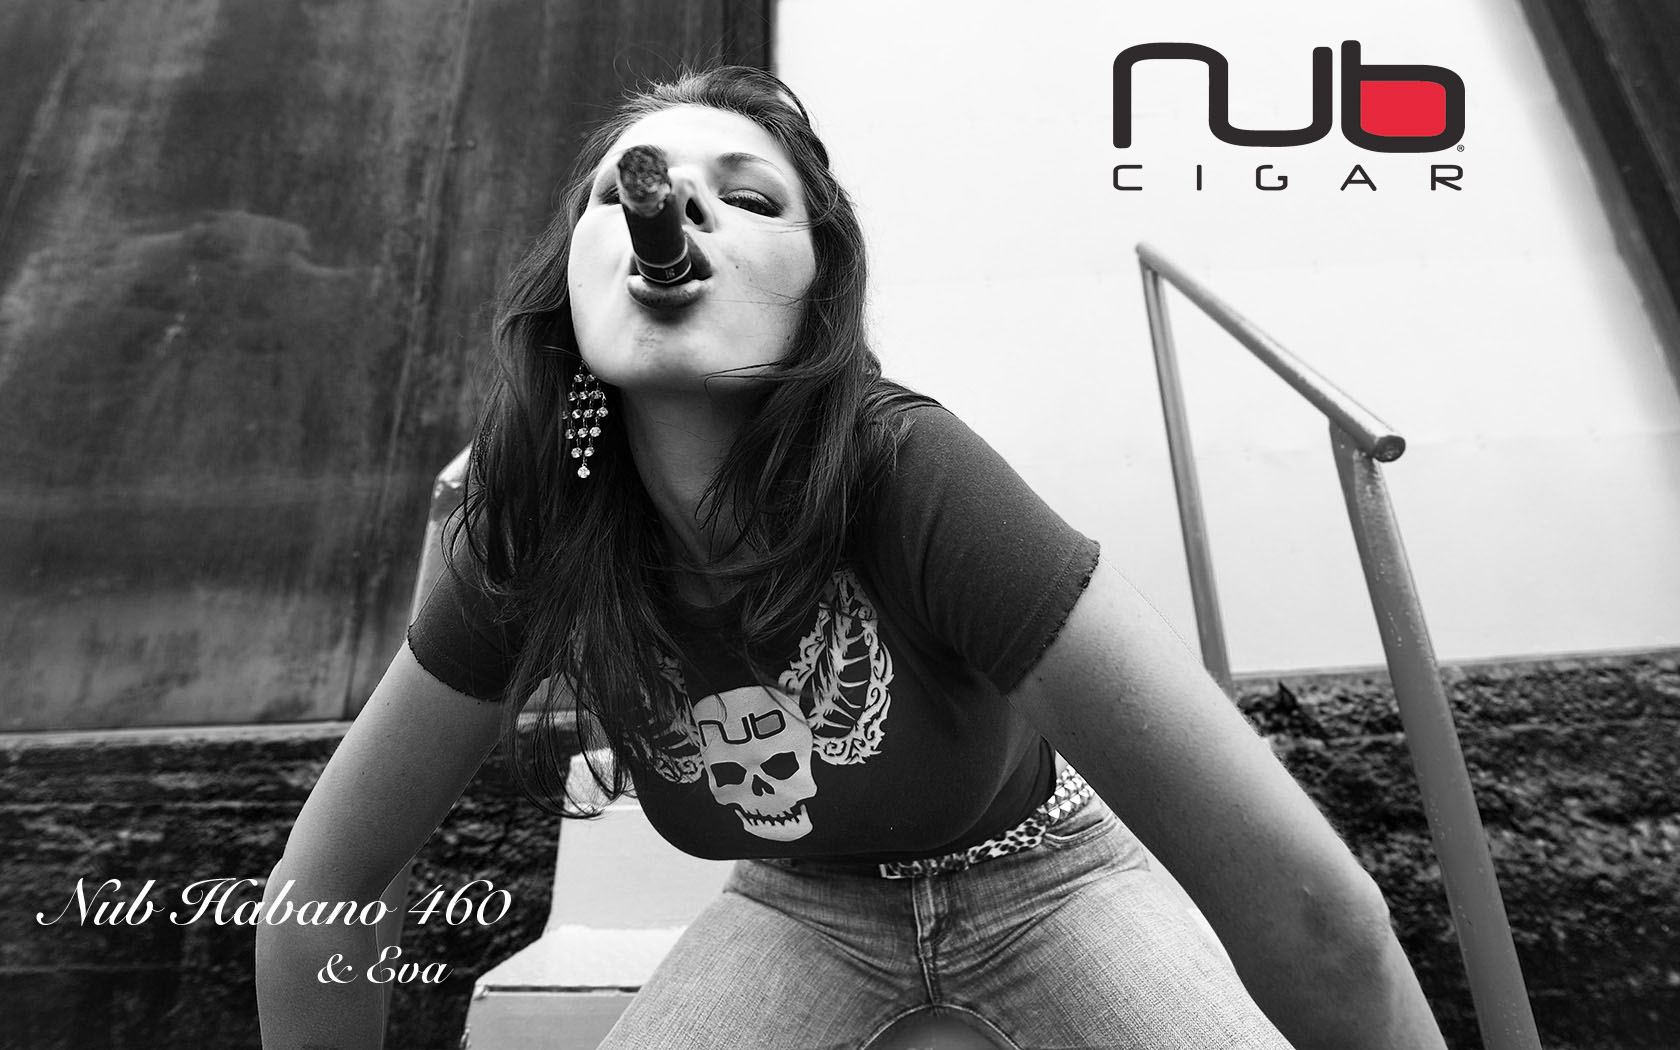 cigars nub the habano is great though cigar HD Wallpaper   General 1680x1050